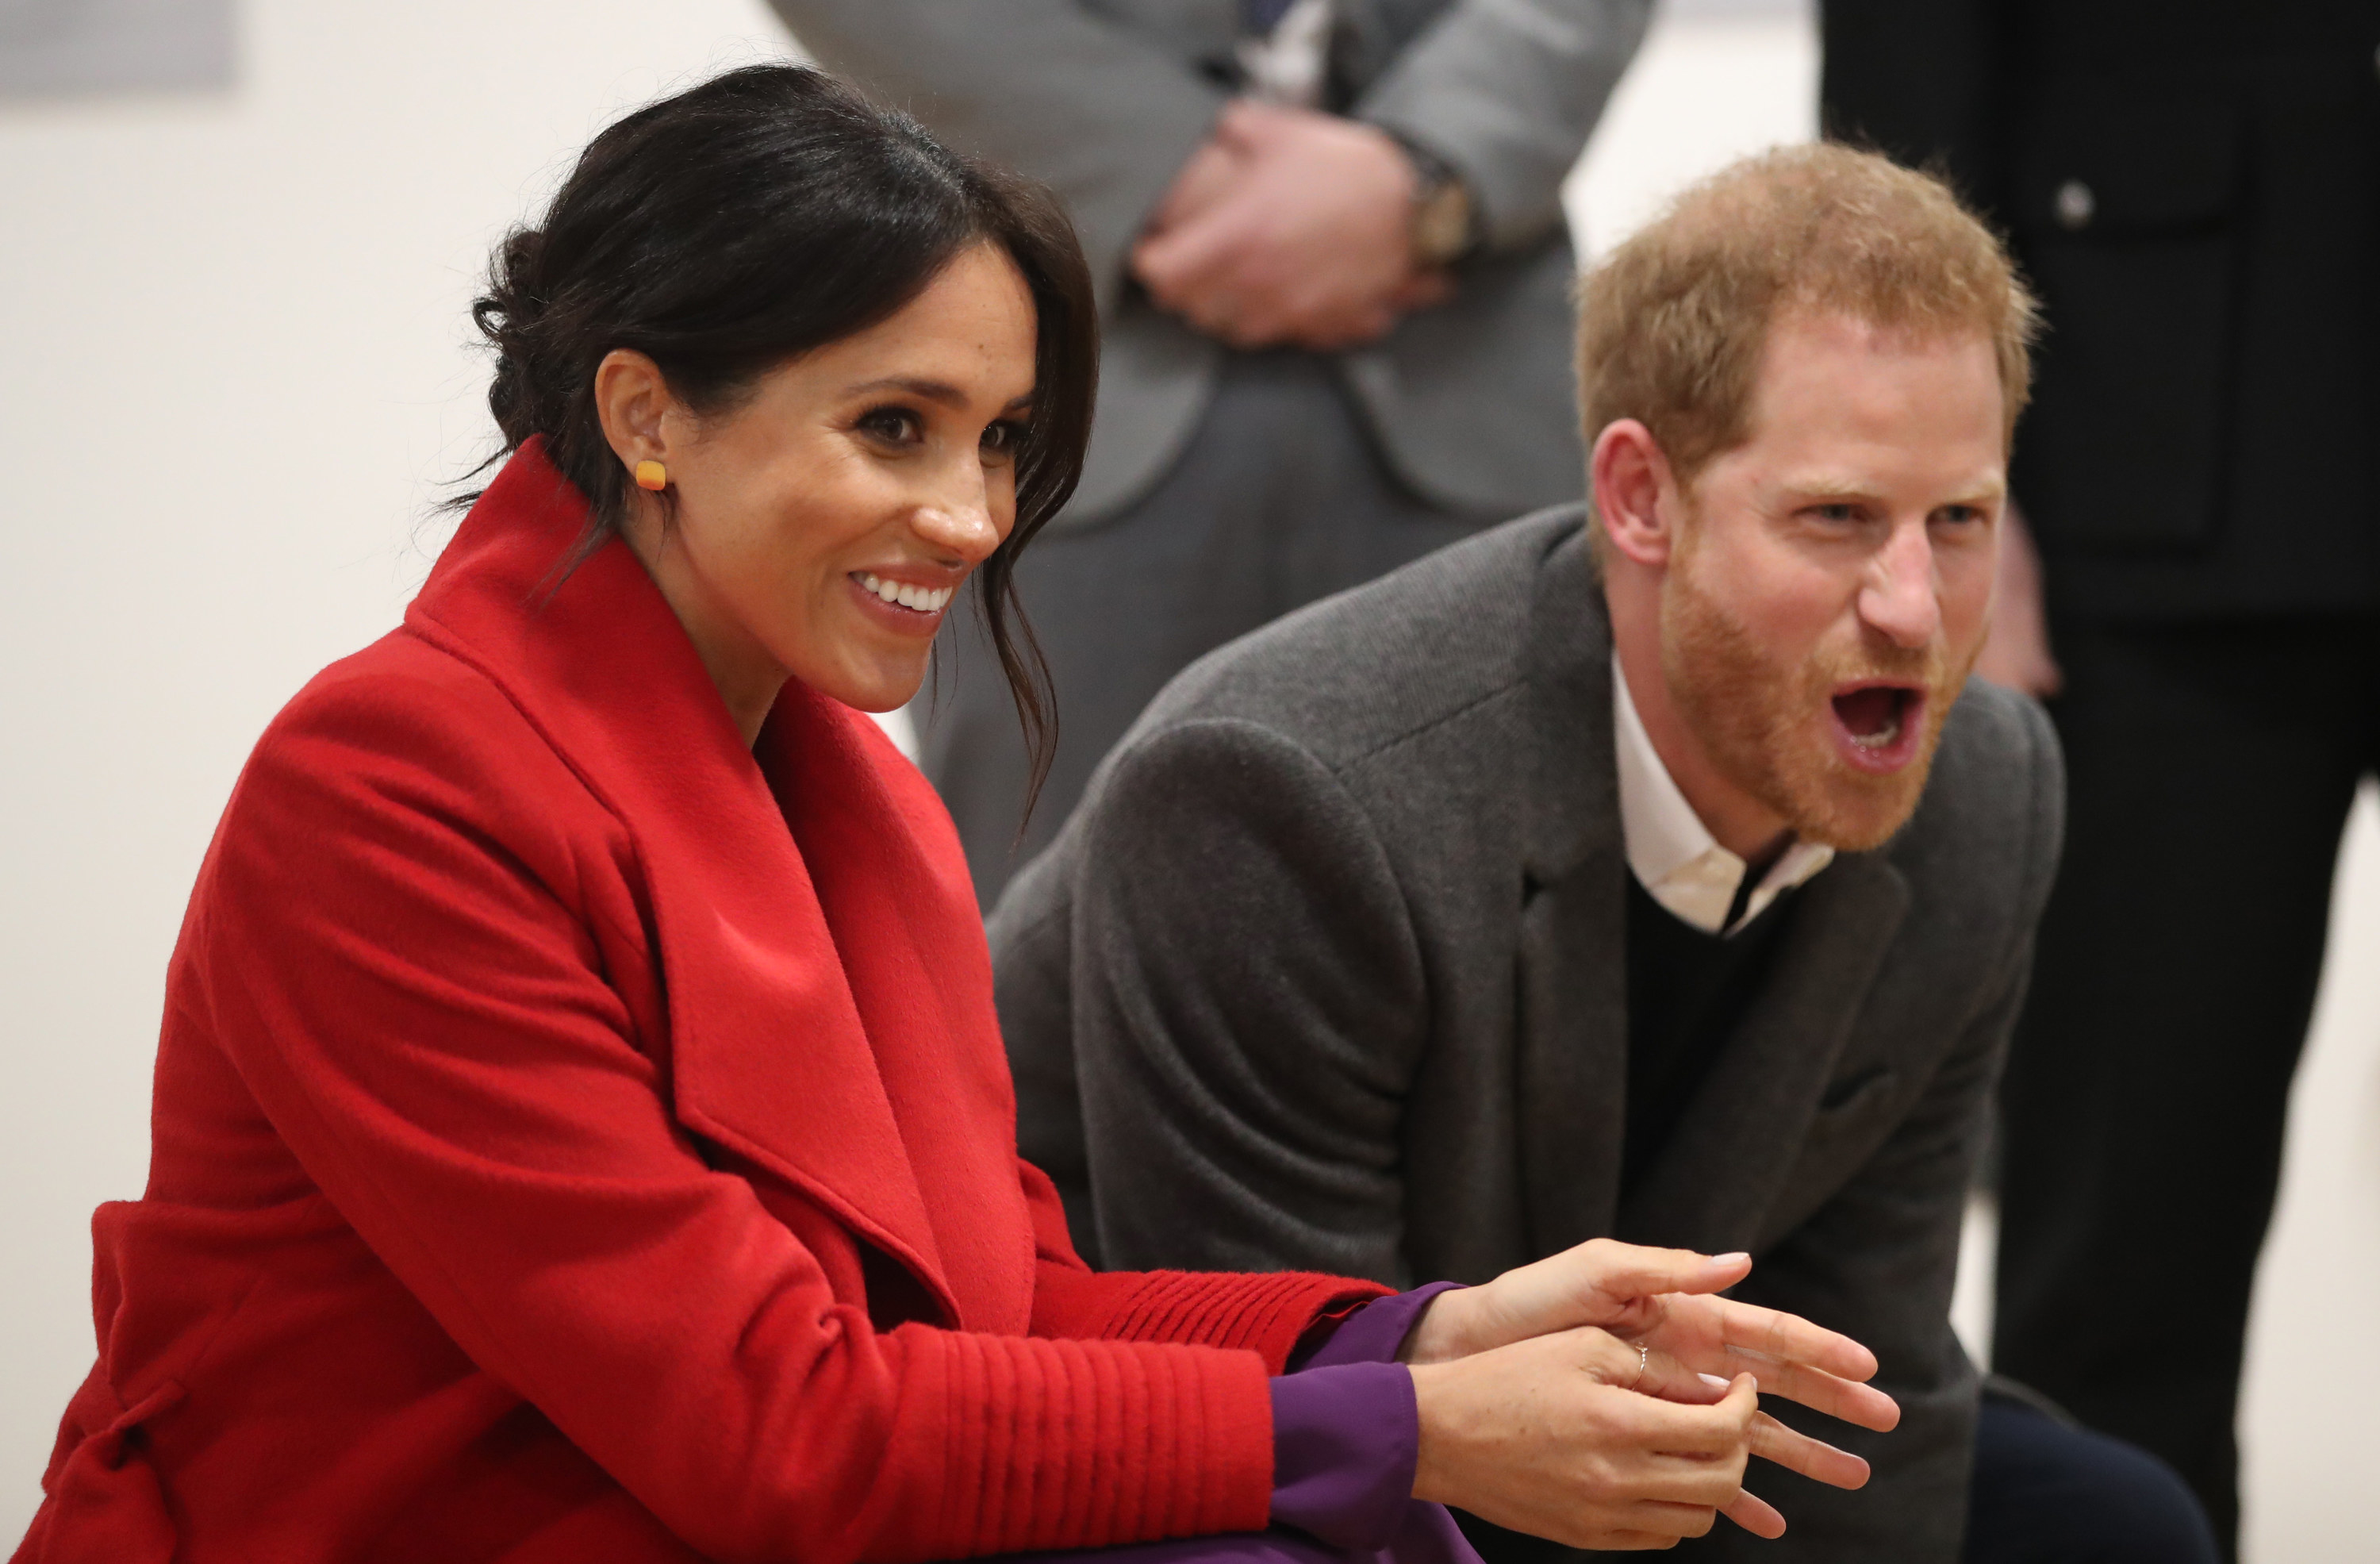 Meghan, Duchess of Sussex and Prince Harry, Duke of Sussex during their visit to the Hive, Wirral Youth Zone as part of a visit to Birkenhead on January 14, 2019, in Birkenhead, United Kingdom